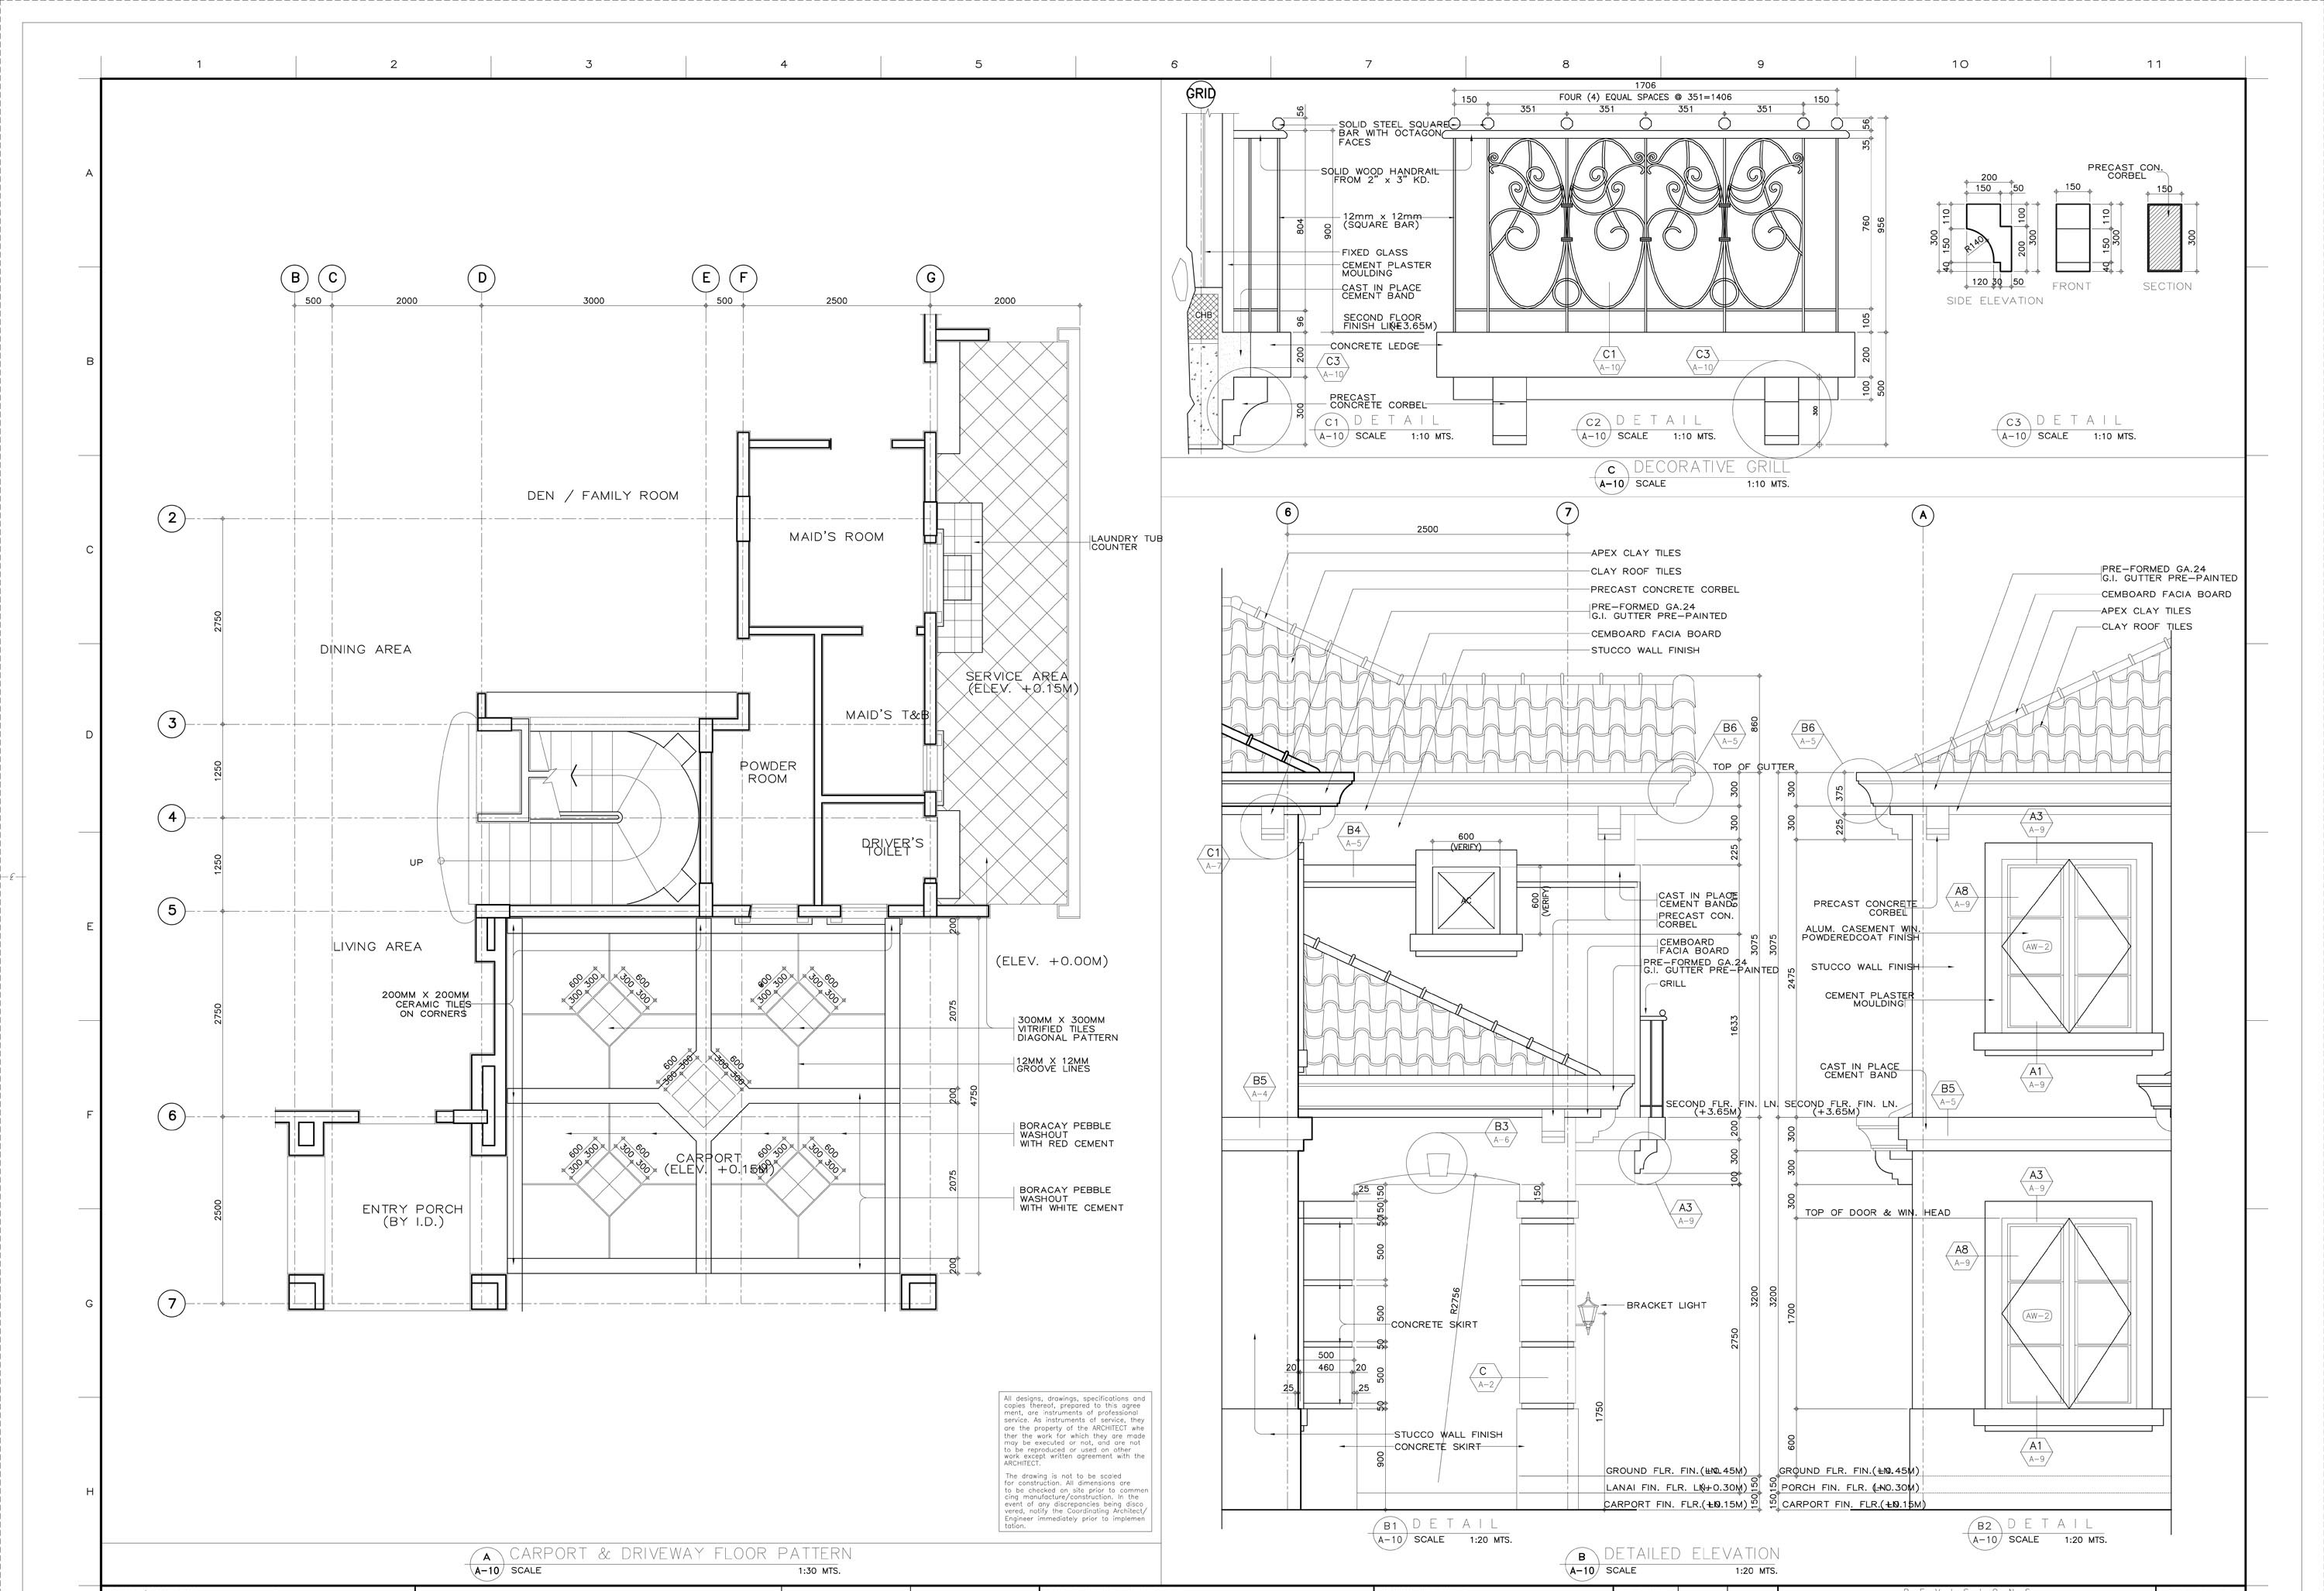 Cad Plan Of House on solidworks house plans, bim house plans, pool house plans, pdf house plans, art house plans, modern house plans, engineering house plans, kerala house plans, 3 bedroom 2 story house plans, drafting house plans, cop house plans, design drawing plans, architecture house plans, design house plans, cdn house plans, large one story house plans, house construction plans, multimedia house plans, drawing house plans, mandalay house plans,